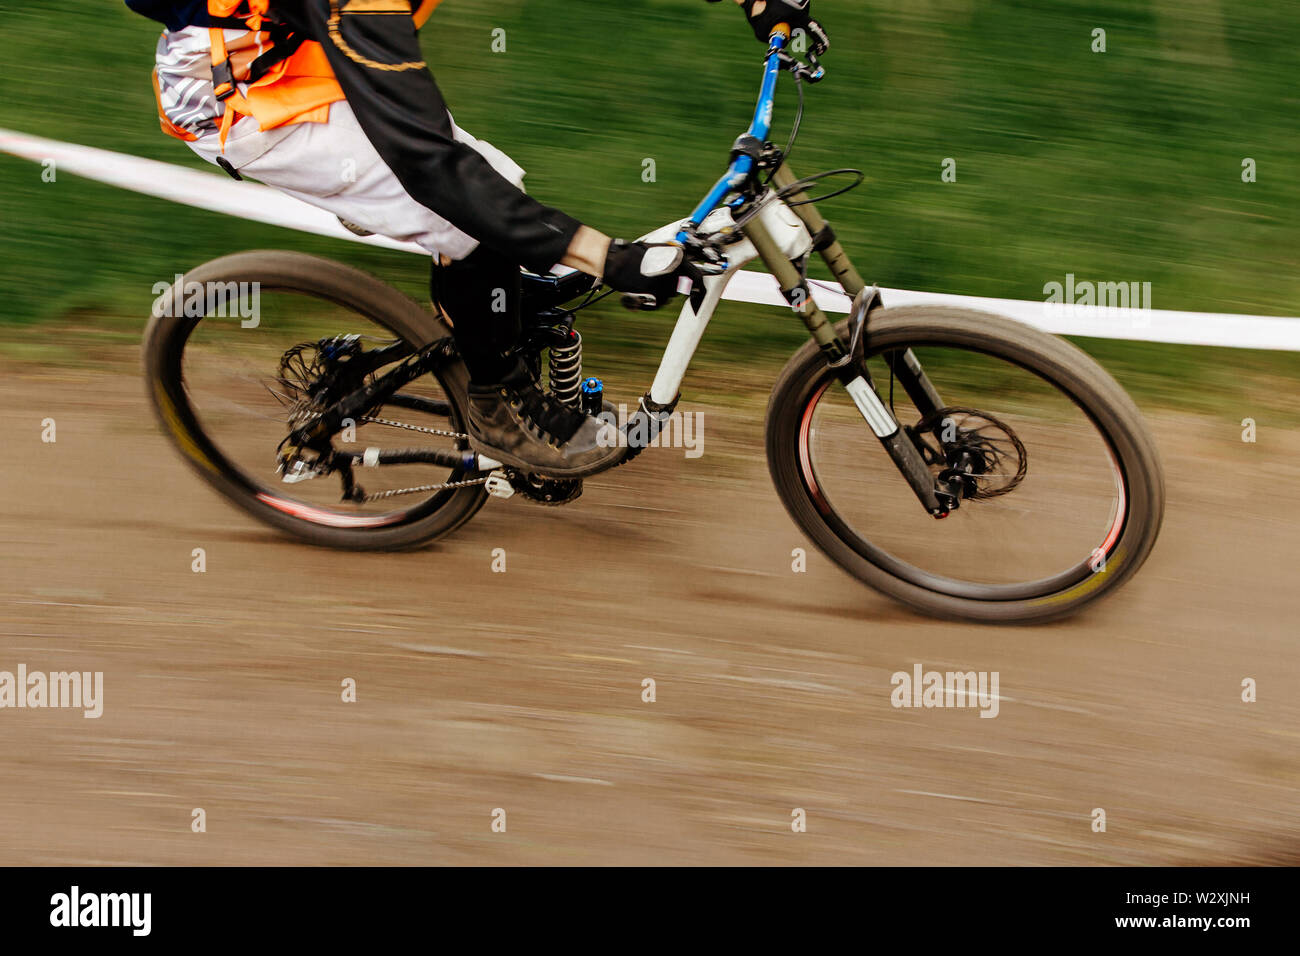 dh rider riding forest trail in downhill motion blur - Stock Image